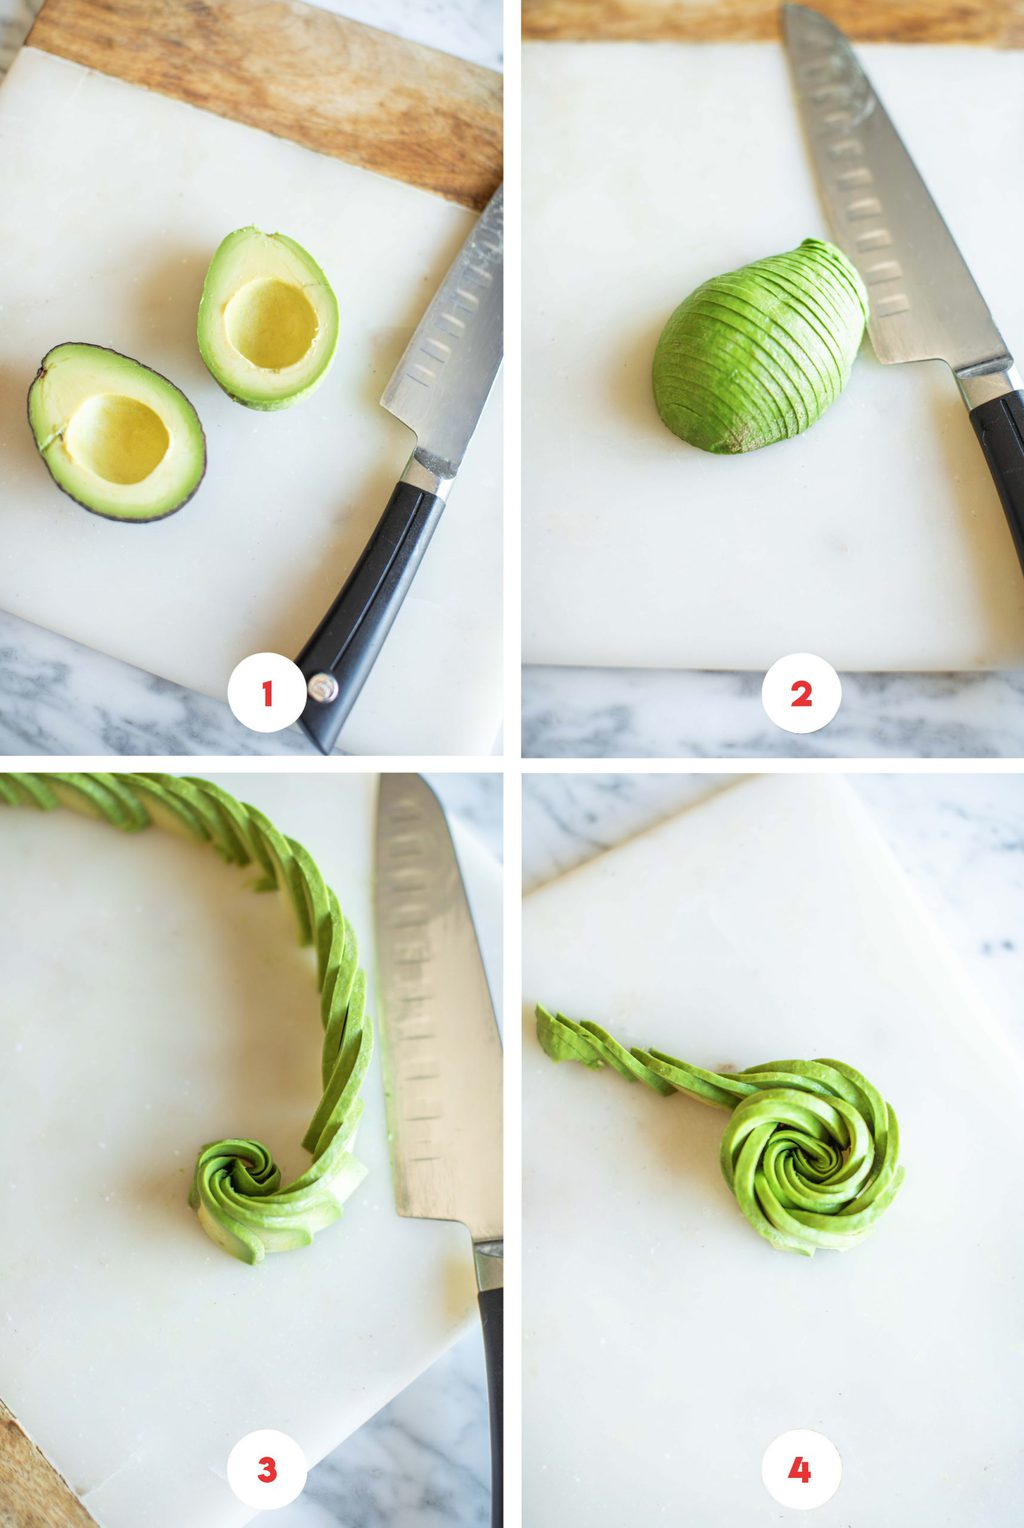 Step by step process on how to make an avocado rose.